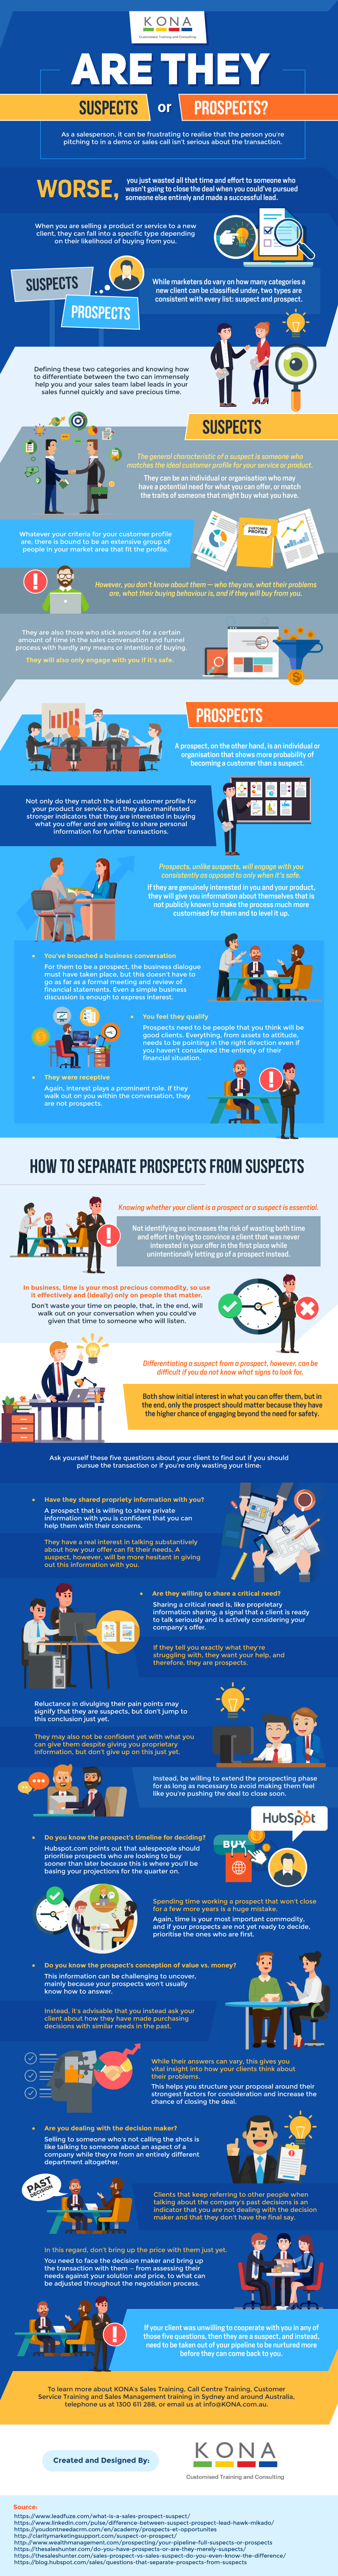 Are They Suspects or Prospects - Infographic